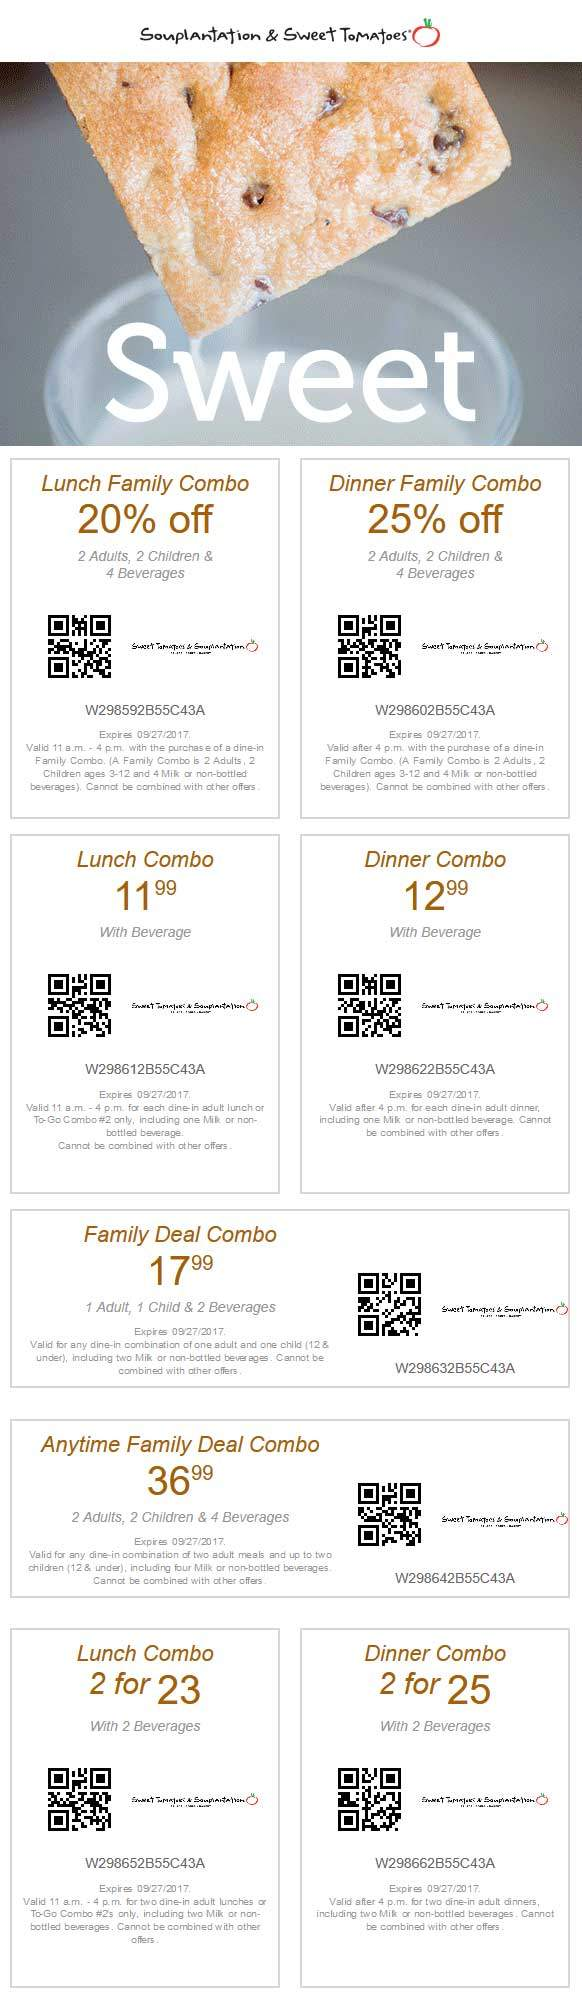 Sweet Tomatoes Coupon August 2018 20% off lunch, 25% off dinner at Souplantation & Sweet Tomatoes